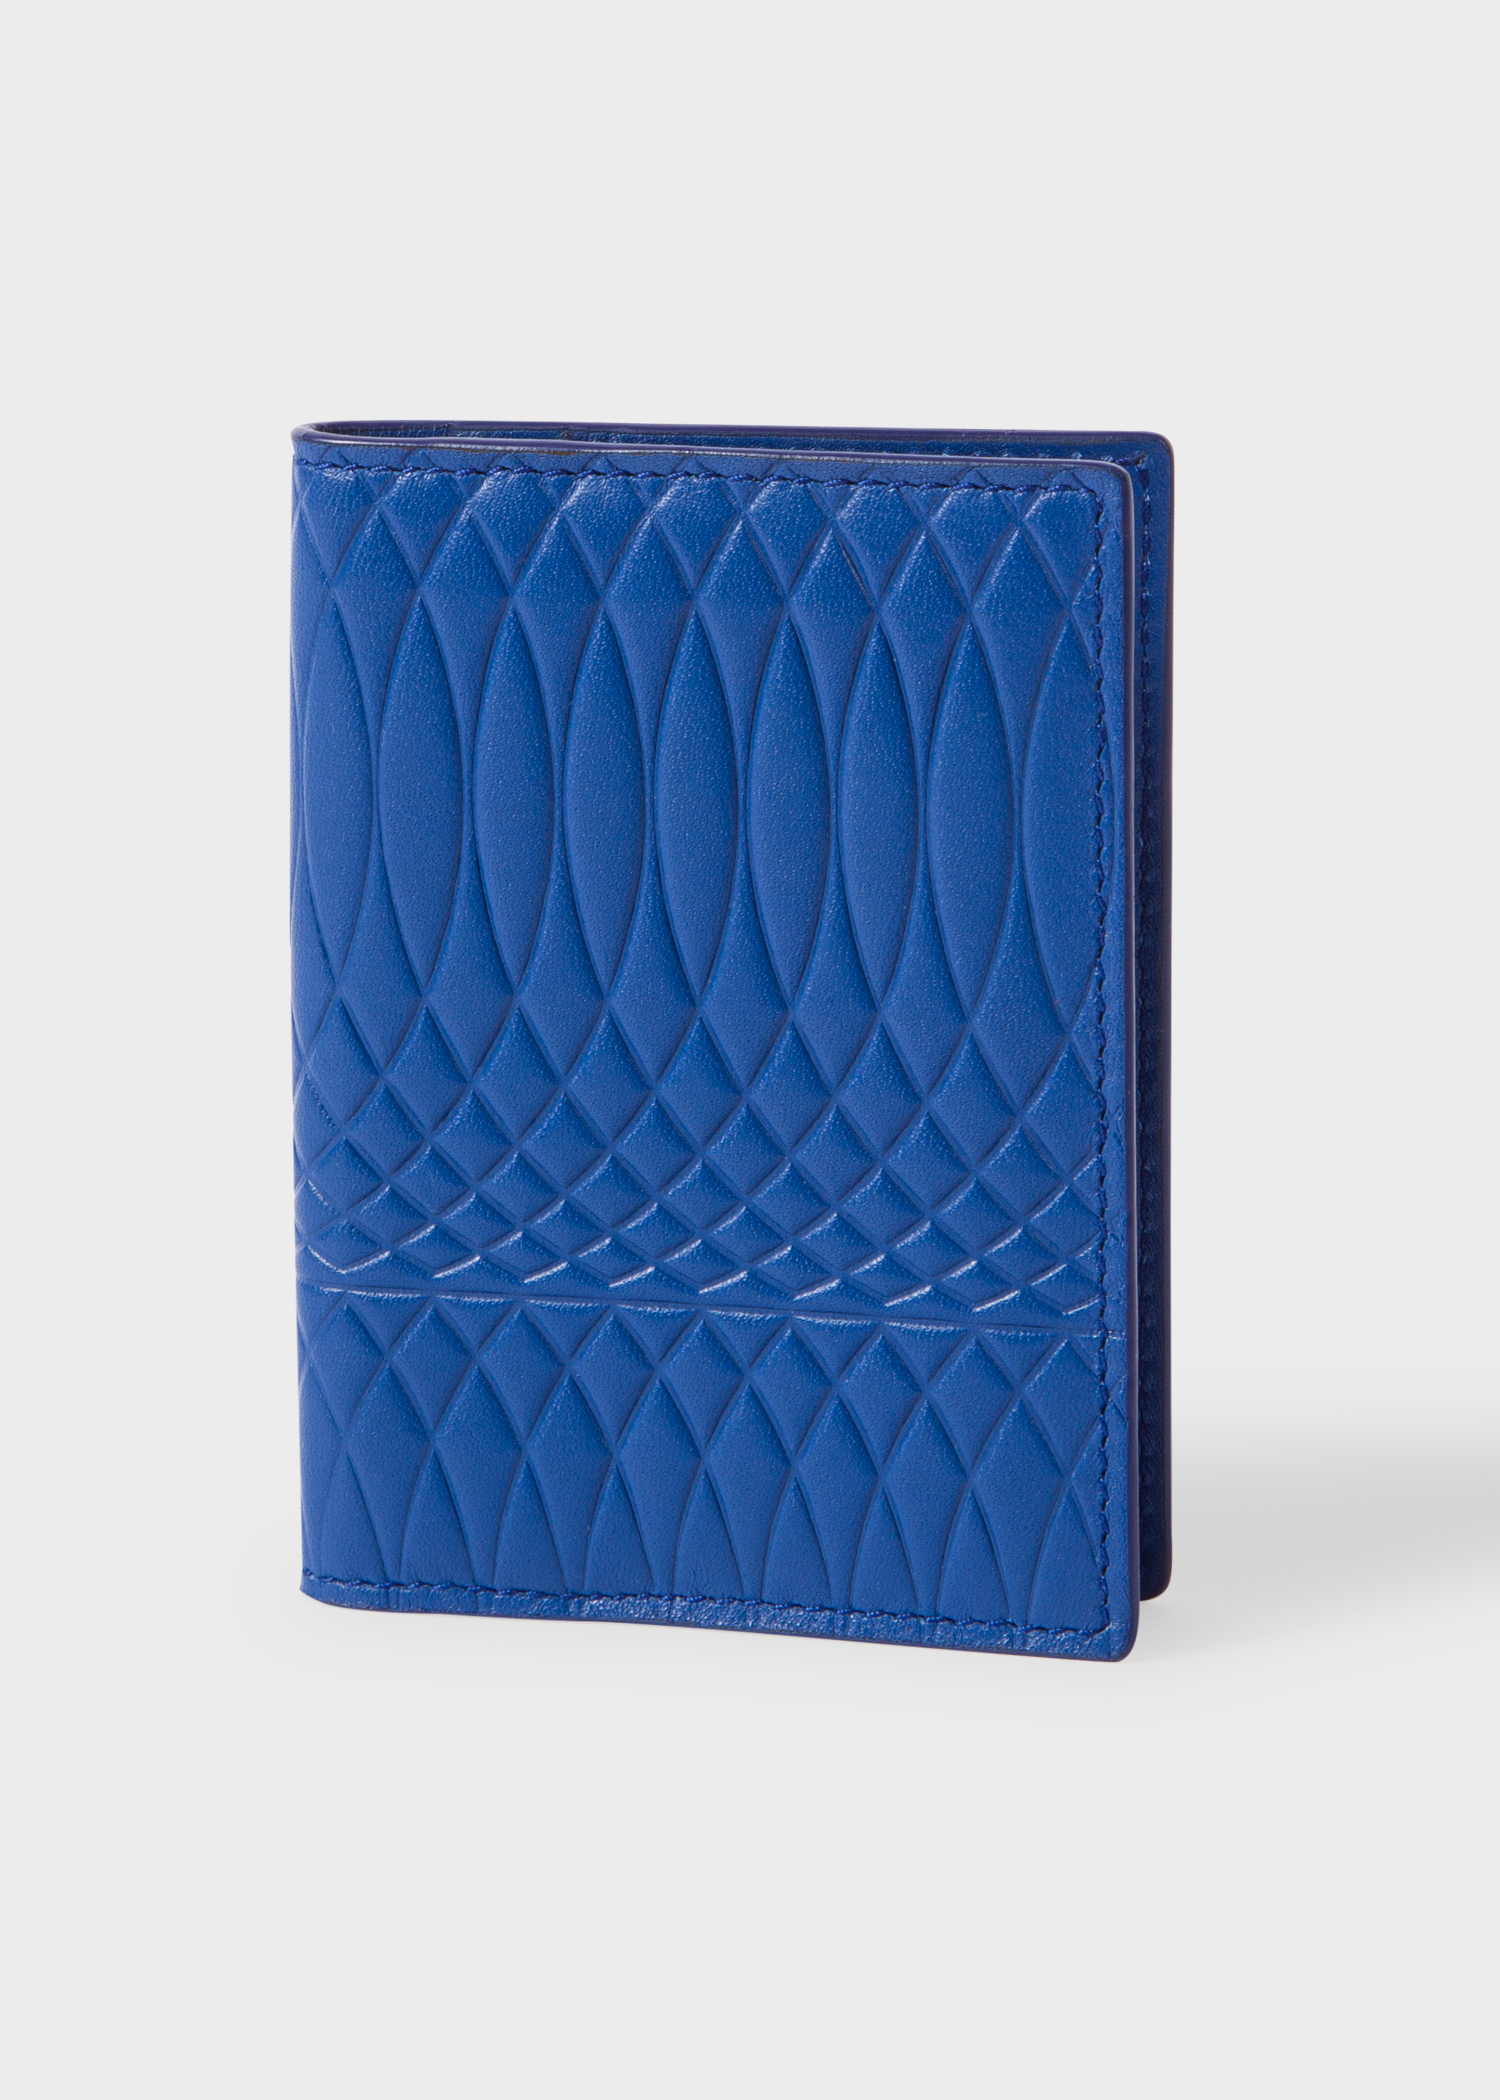 64f0efc70a3d Paul Smith No.9 | Men's Blue Leather Credit Card Wallet - Paul Smith ...